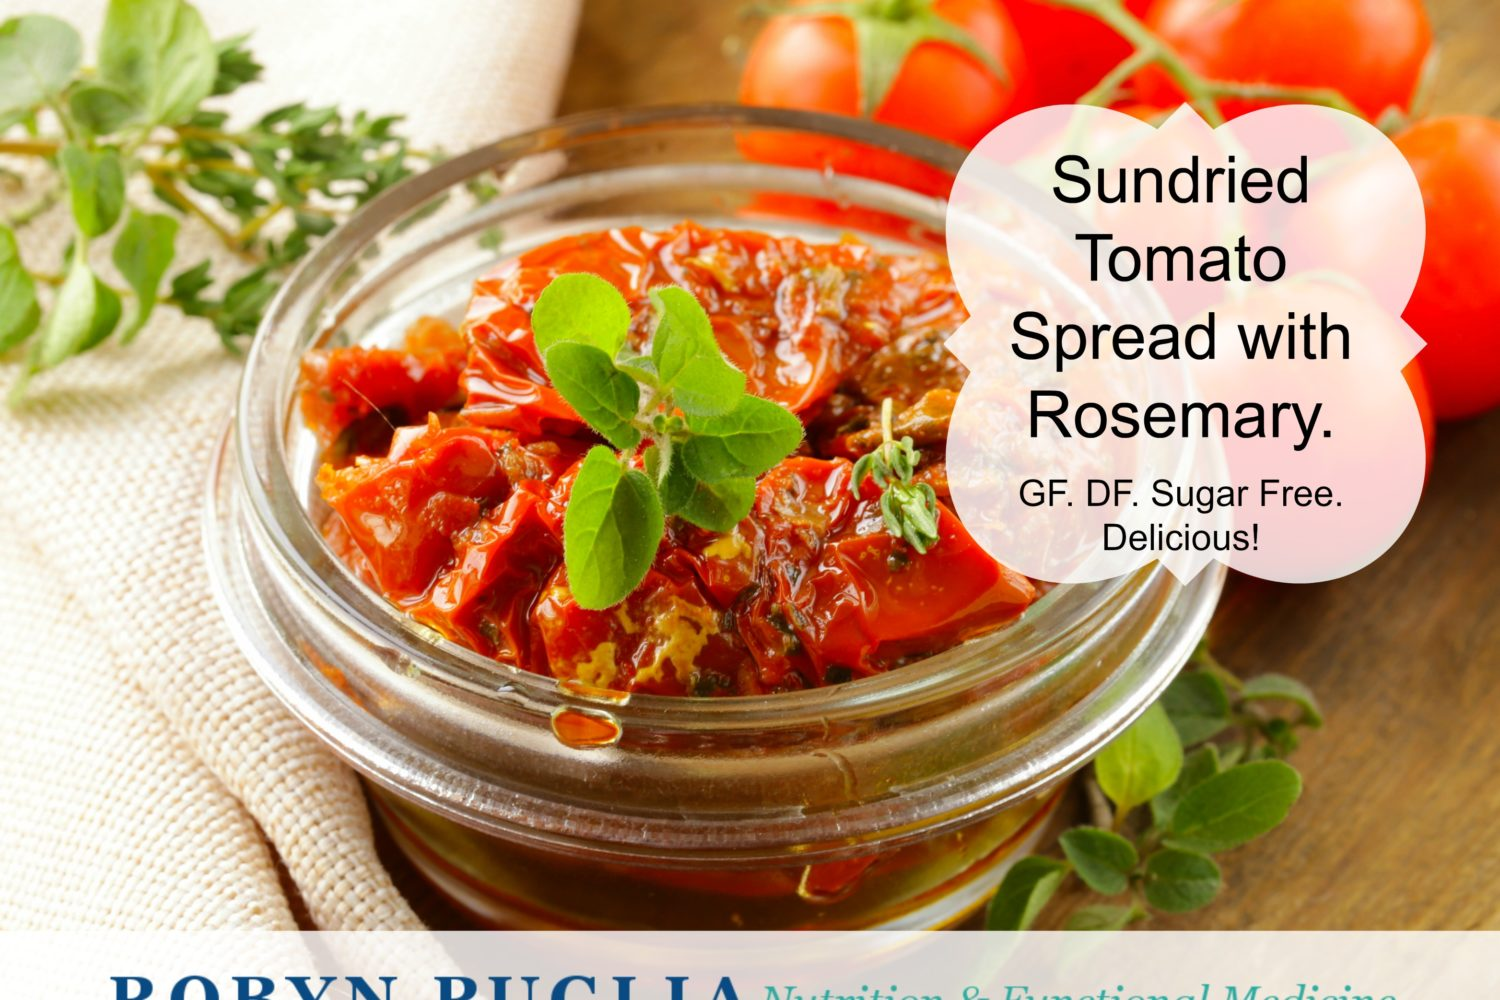 Sundried Tomato Spread with Rosemary